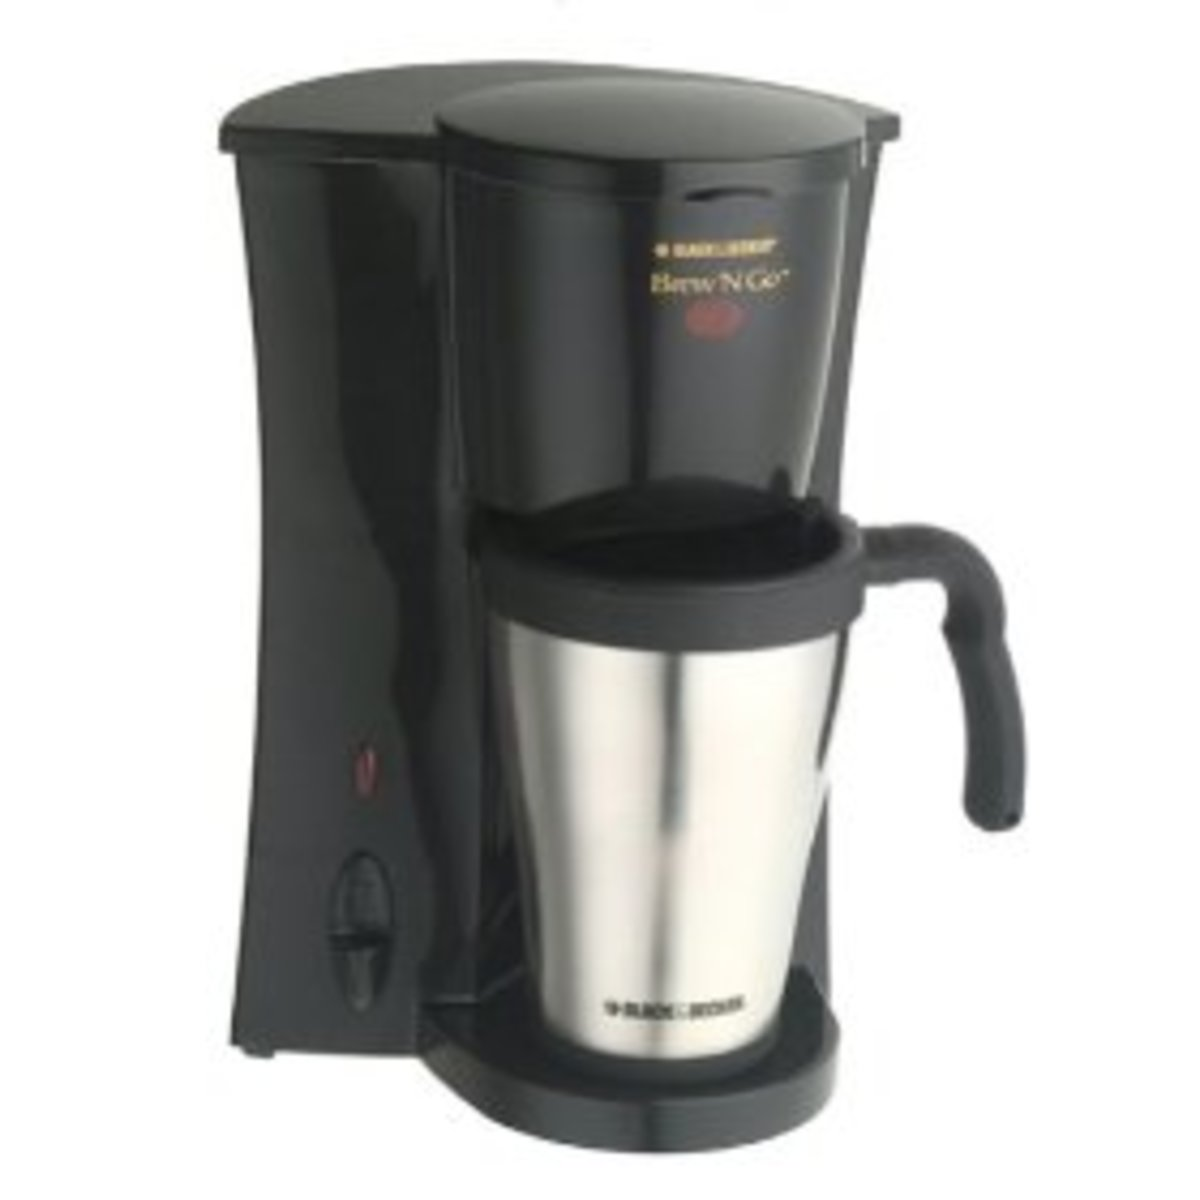 Whats The Best Small Coffee Maker Hubpages